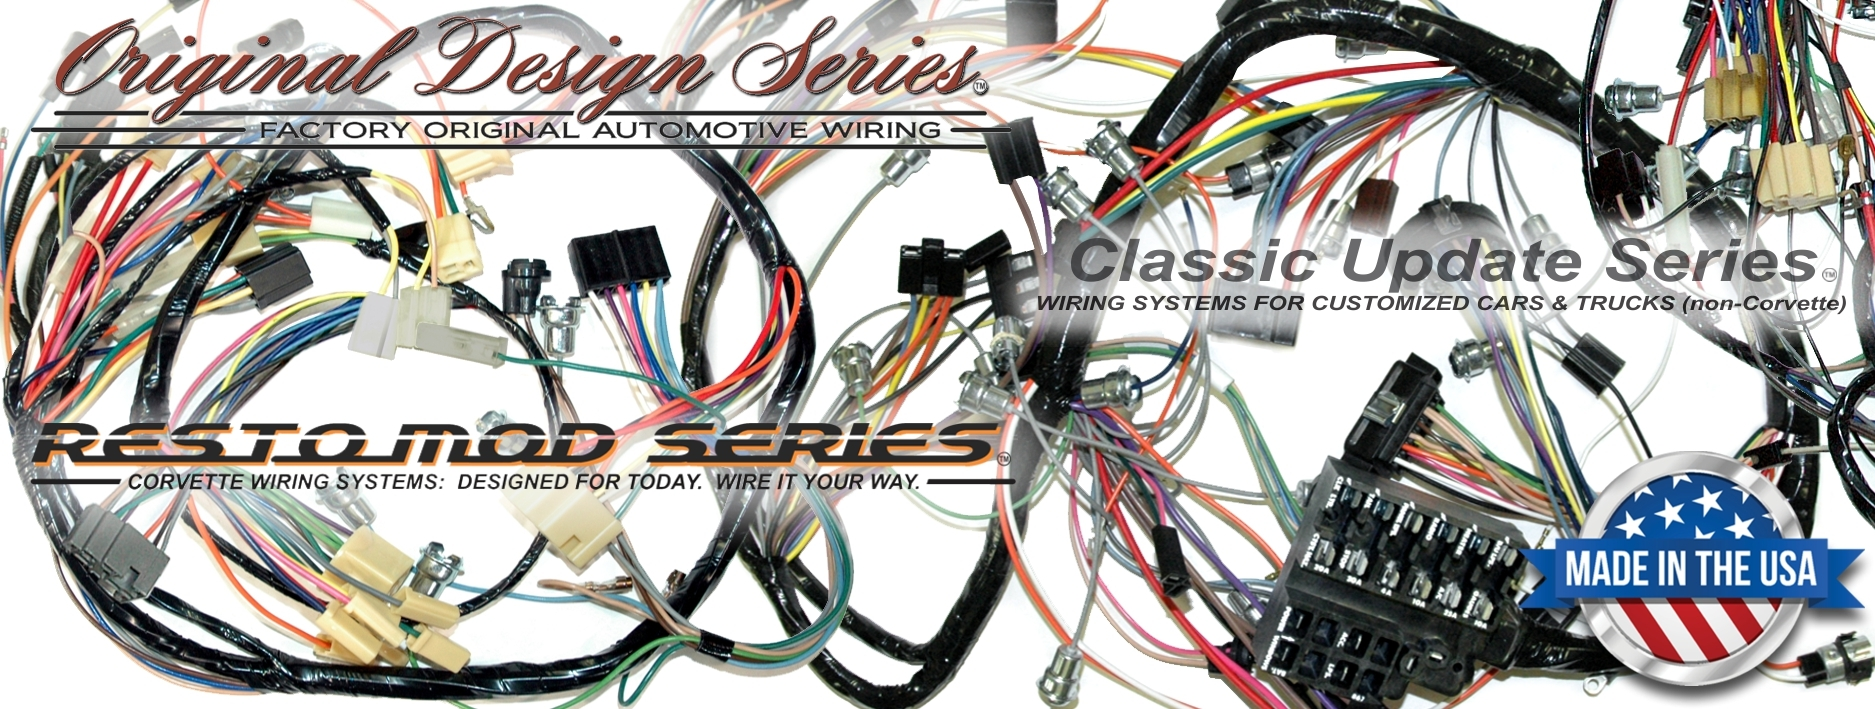 exact oem reproduction wiring harnesses and restomod wiring systems rh lectriclimited com 280z wiring harness rebuild how to wiring harness how to